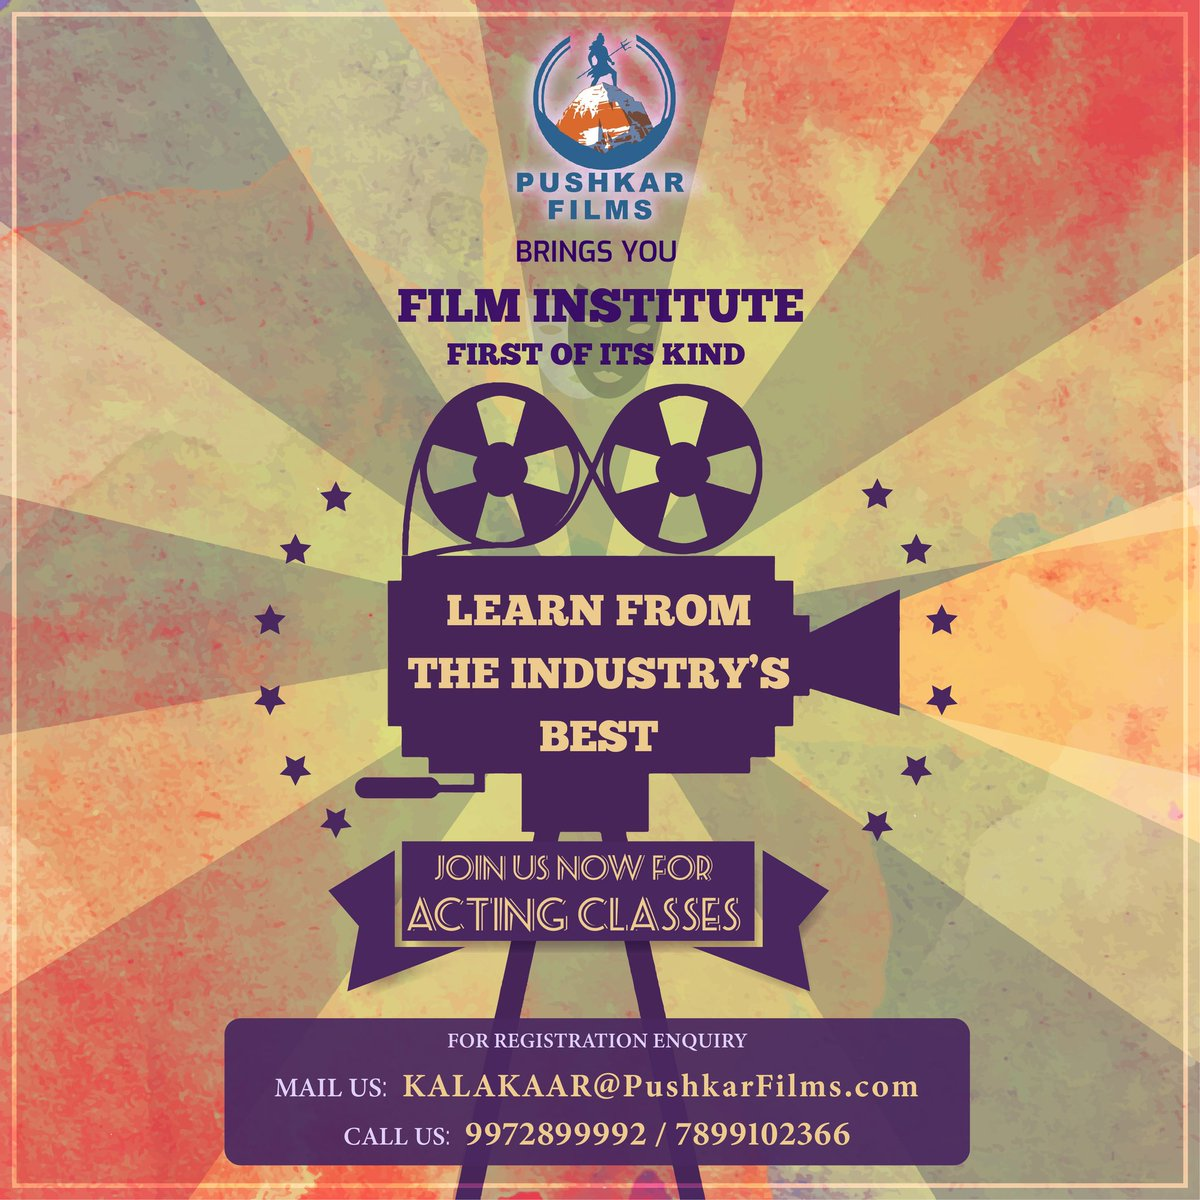 Here's your chance to wing your acting passion and help your career take flight.   A sneak peak into the course is what you get before signing up for it.  So join here tomorrow for a demo class. Enrol now for the demo class ALL THE BEST @Pushkara_M #PushkarFilms #FilmInstitute https://t.co/tcfZ86zBs8